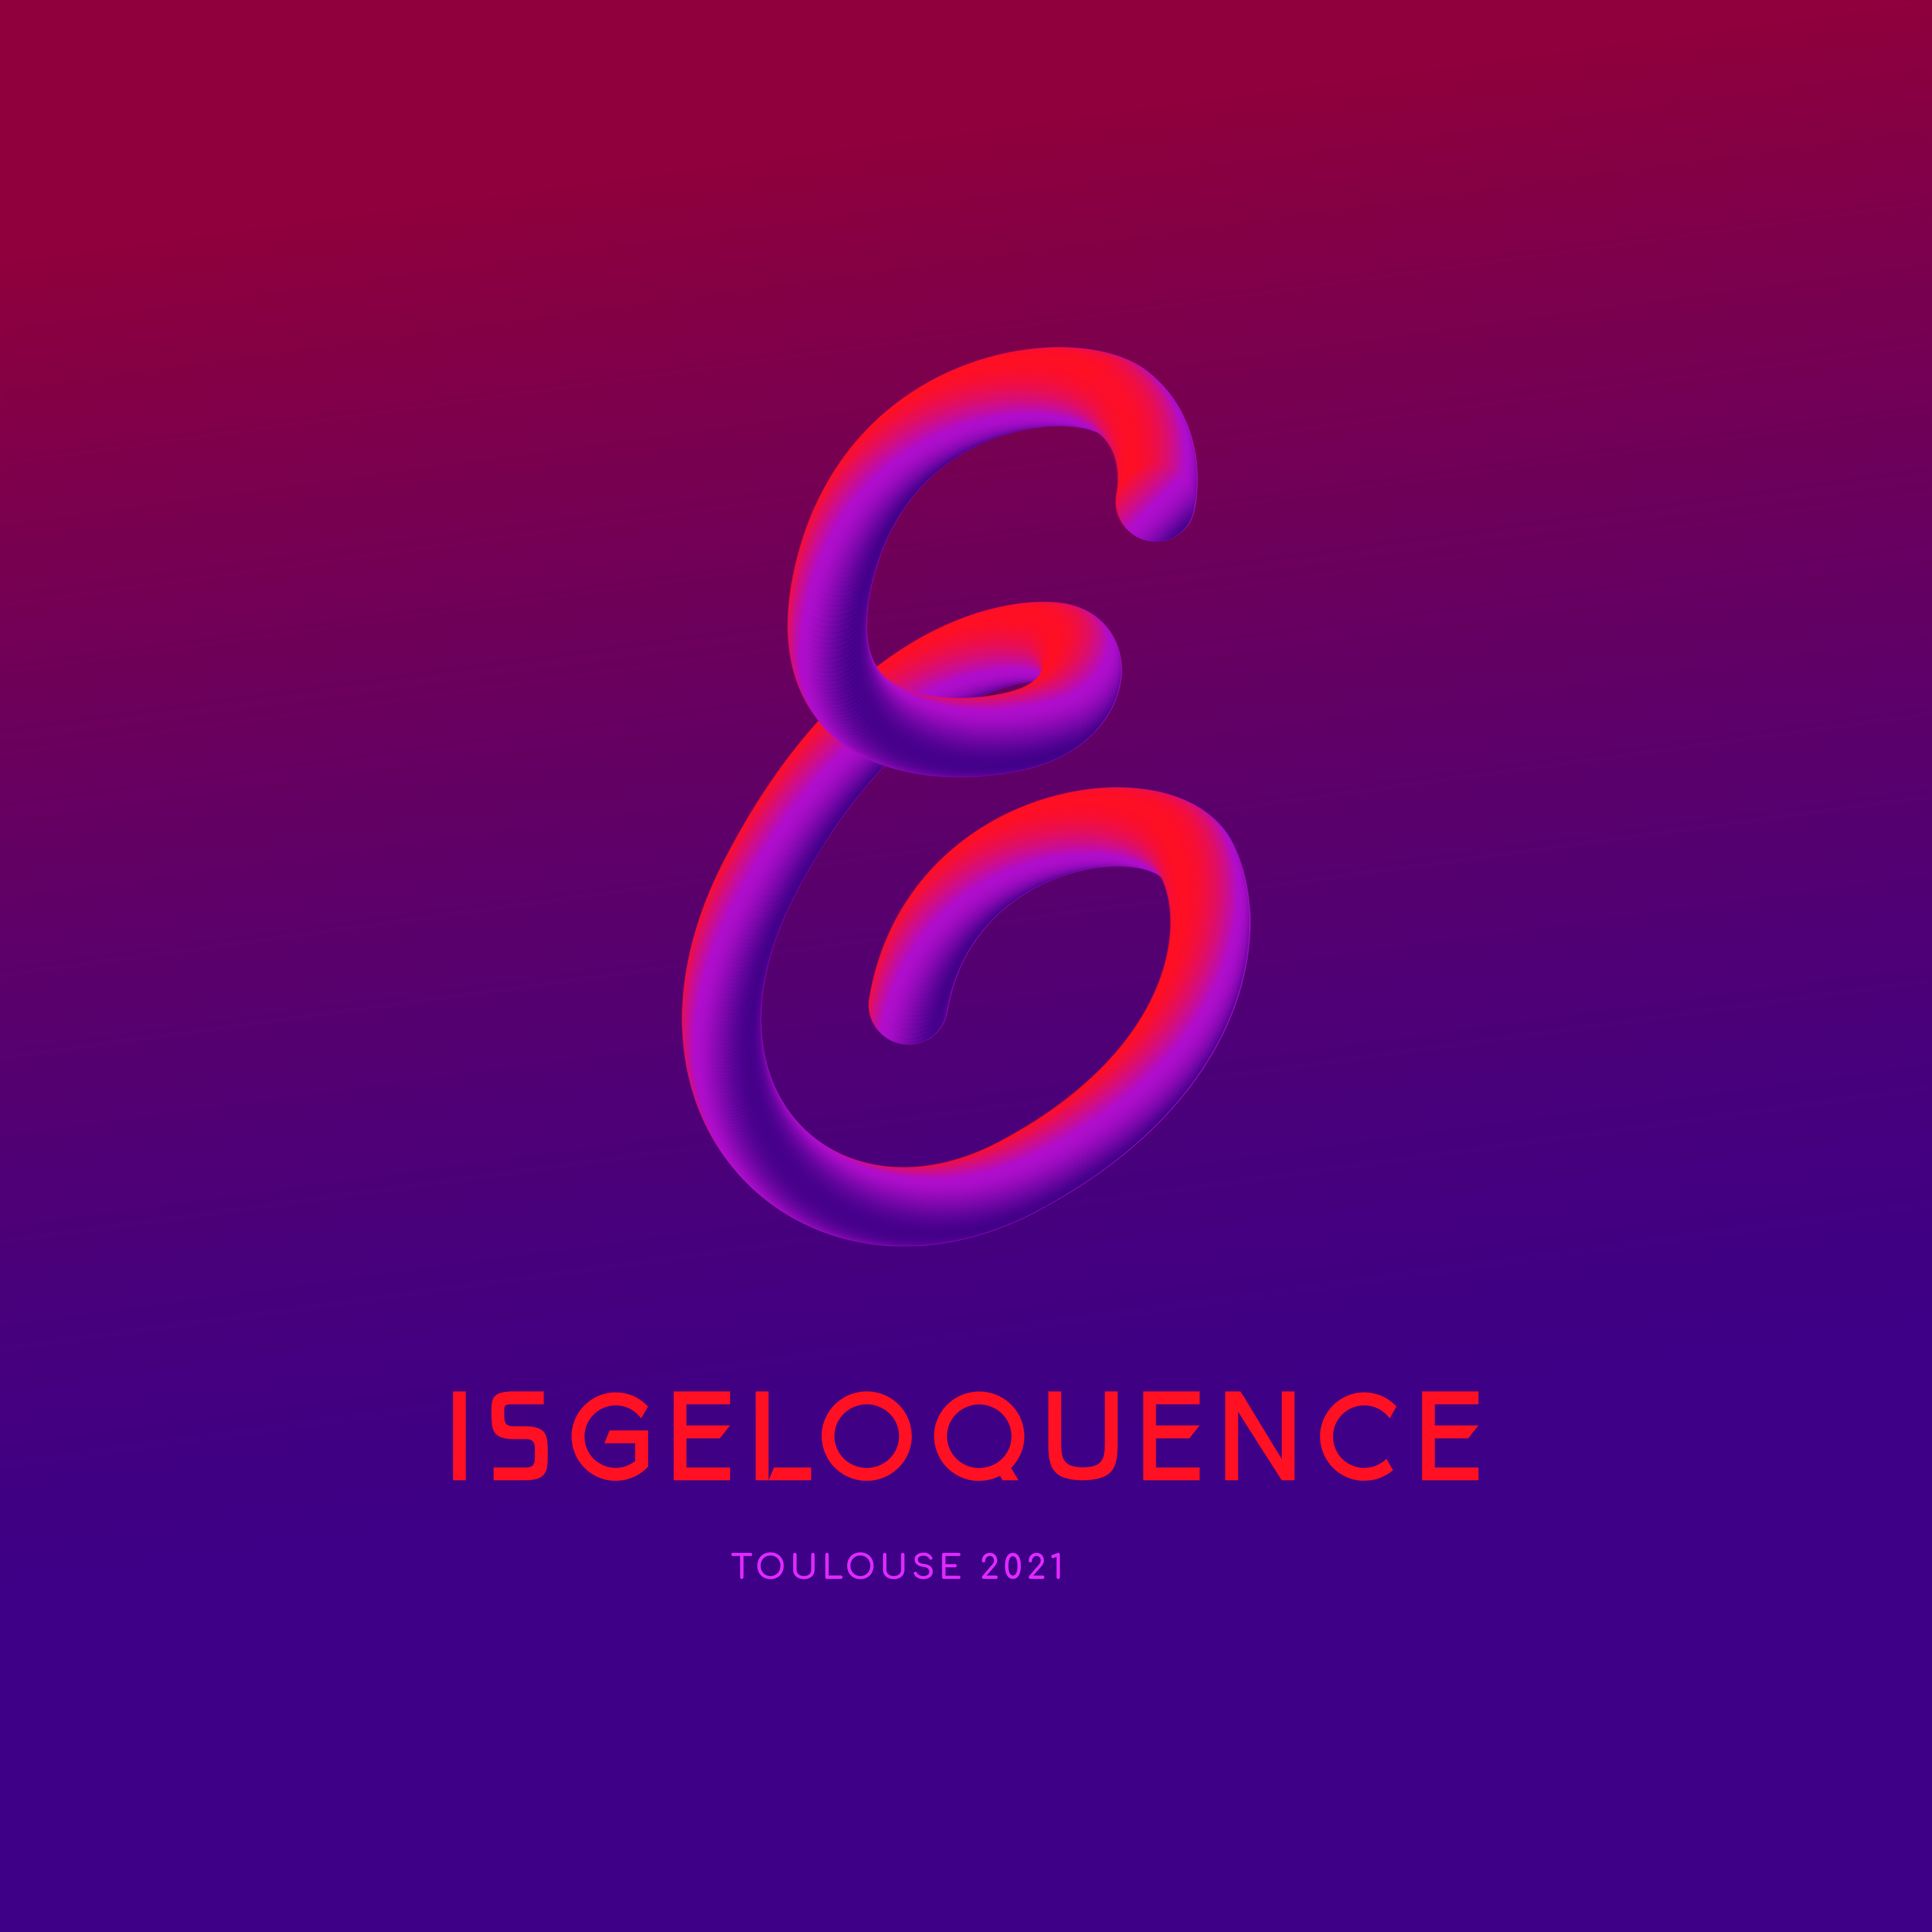 ISGELOQUENCE